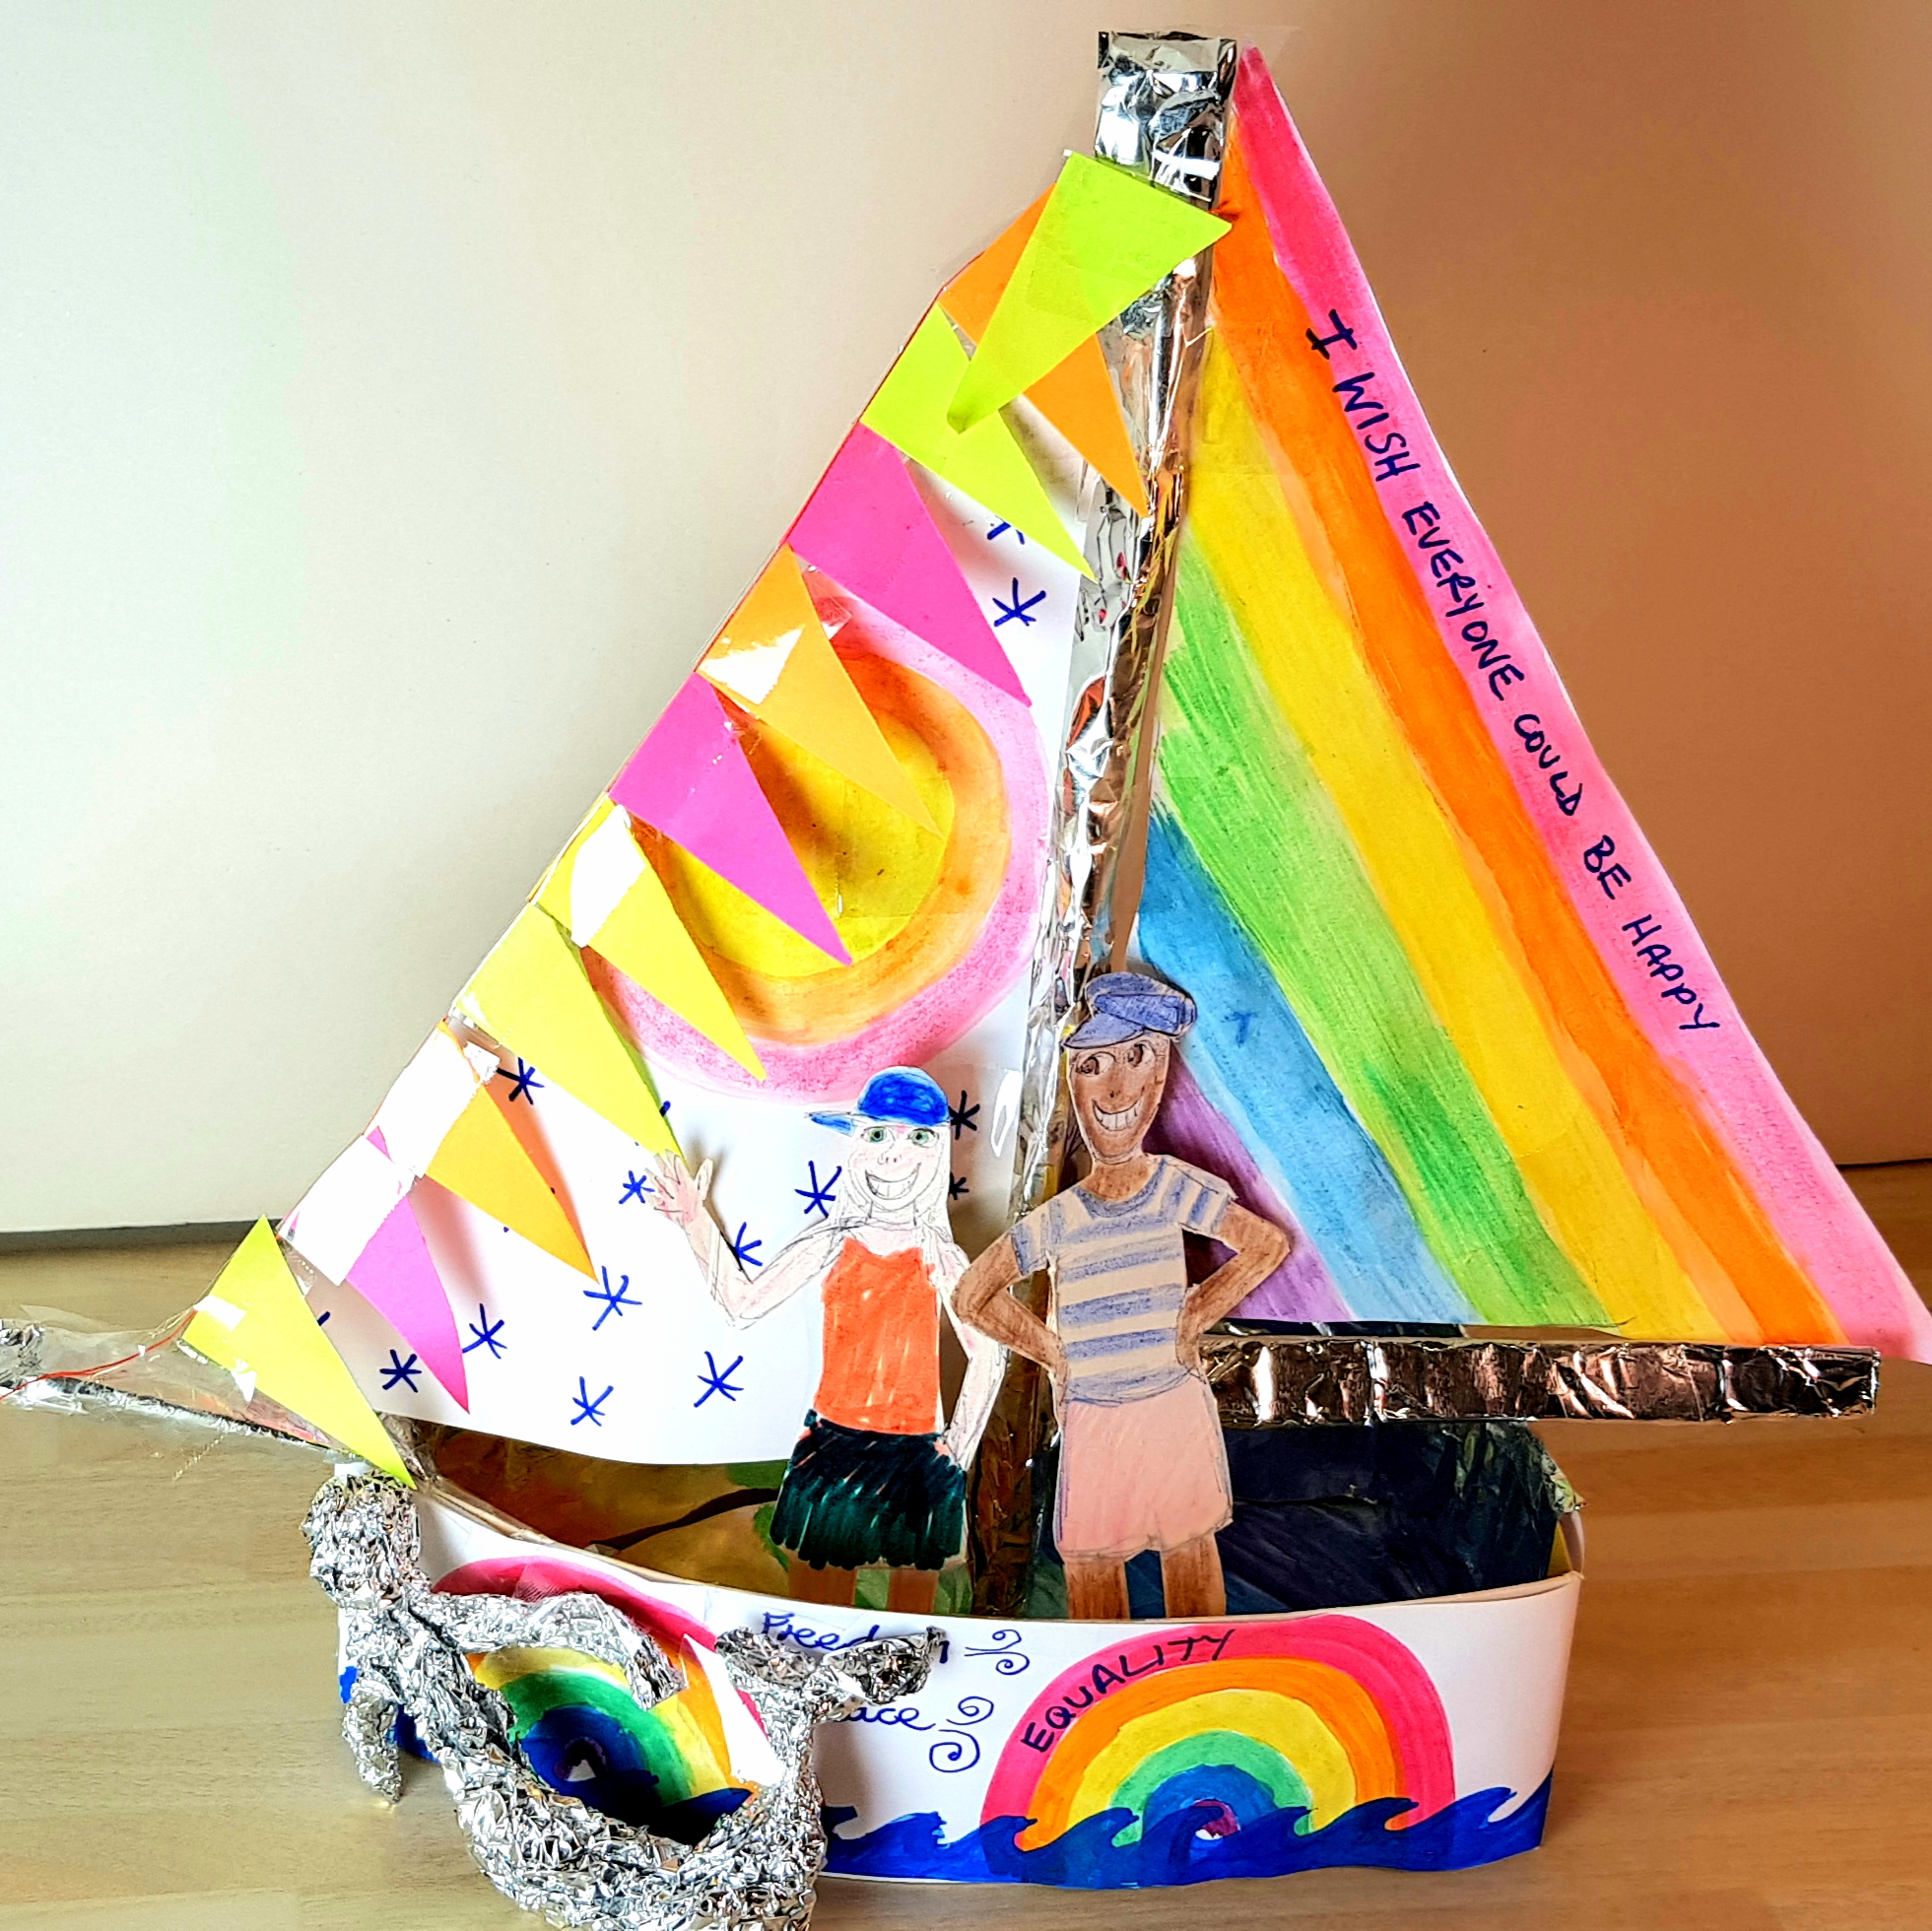 A ship has been made out of paper and tinfoil, decorated with rainbow colours.